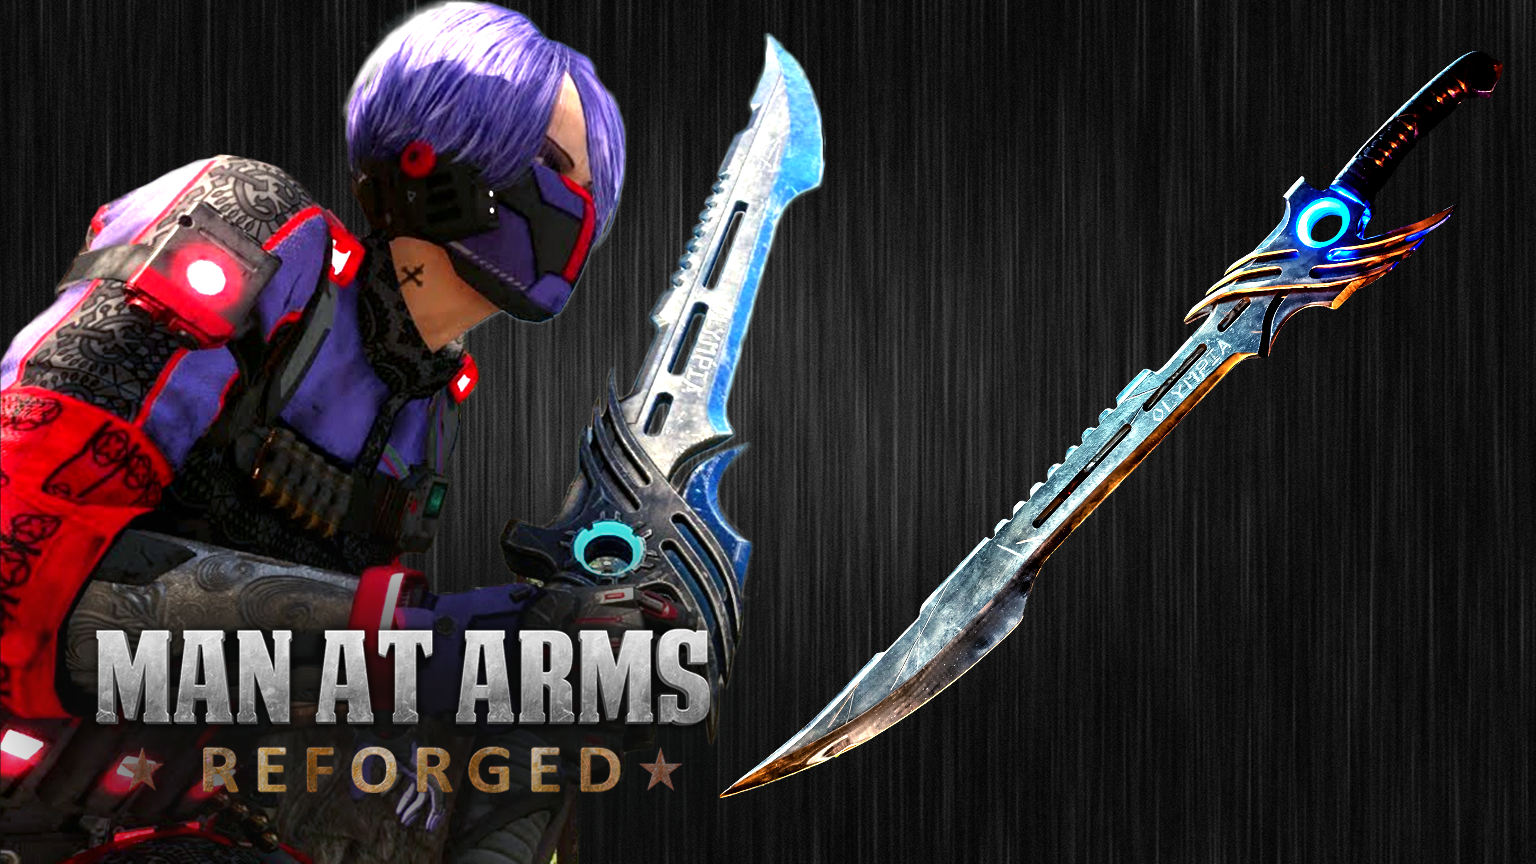 Fury's Sword (Call of Duty - Black Ops III) - MAN AT ARMS: REFORGED